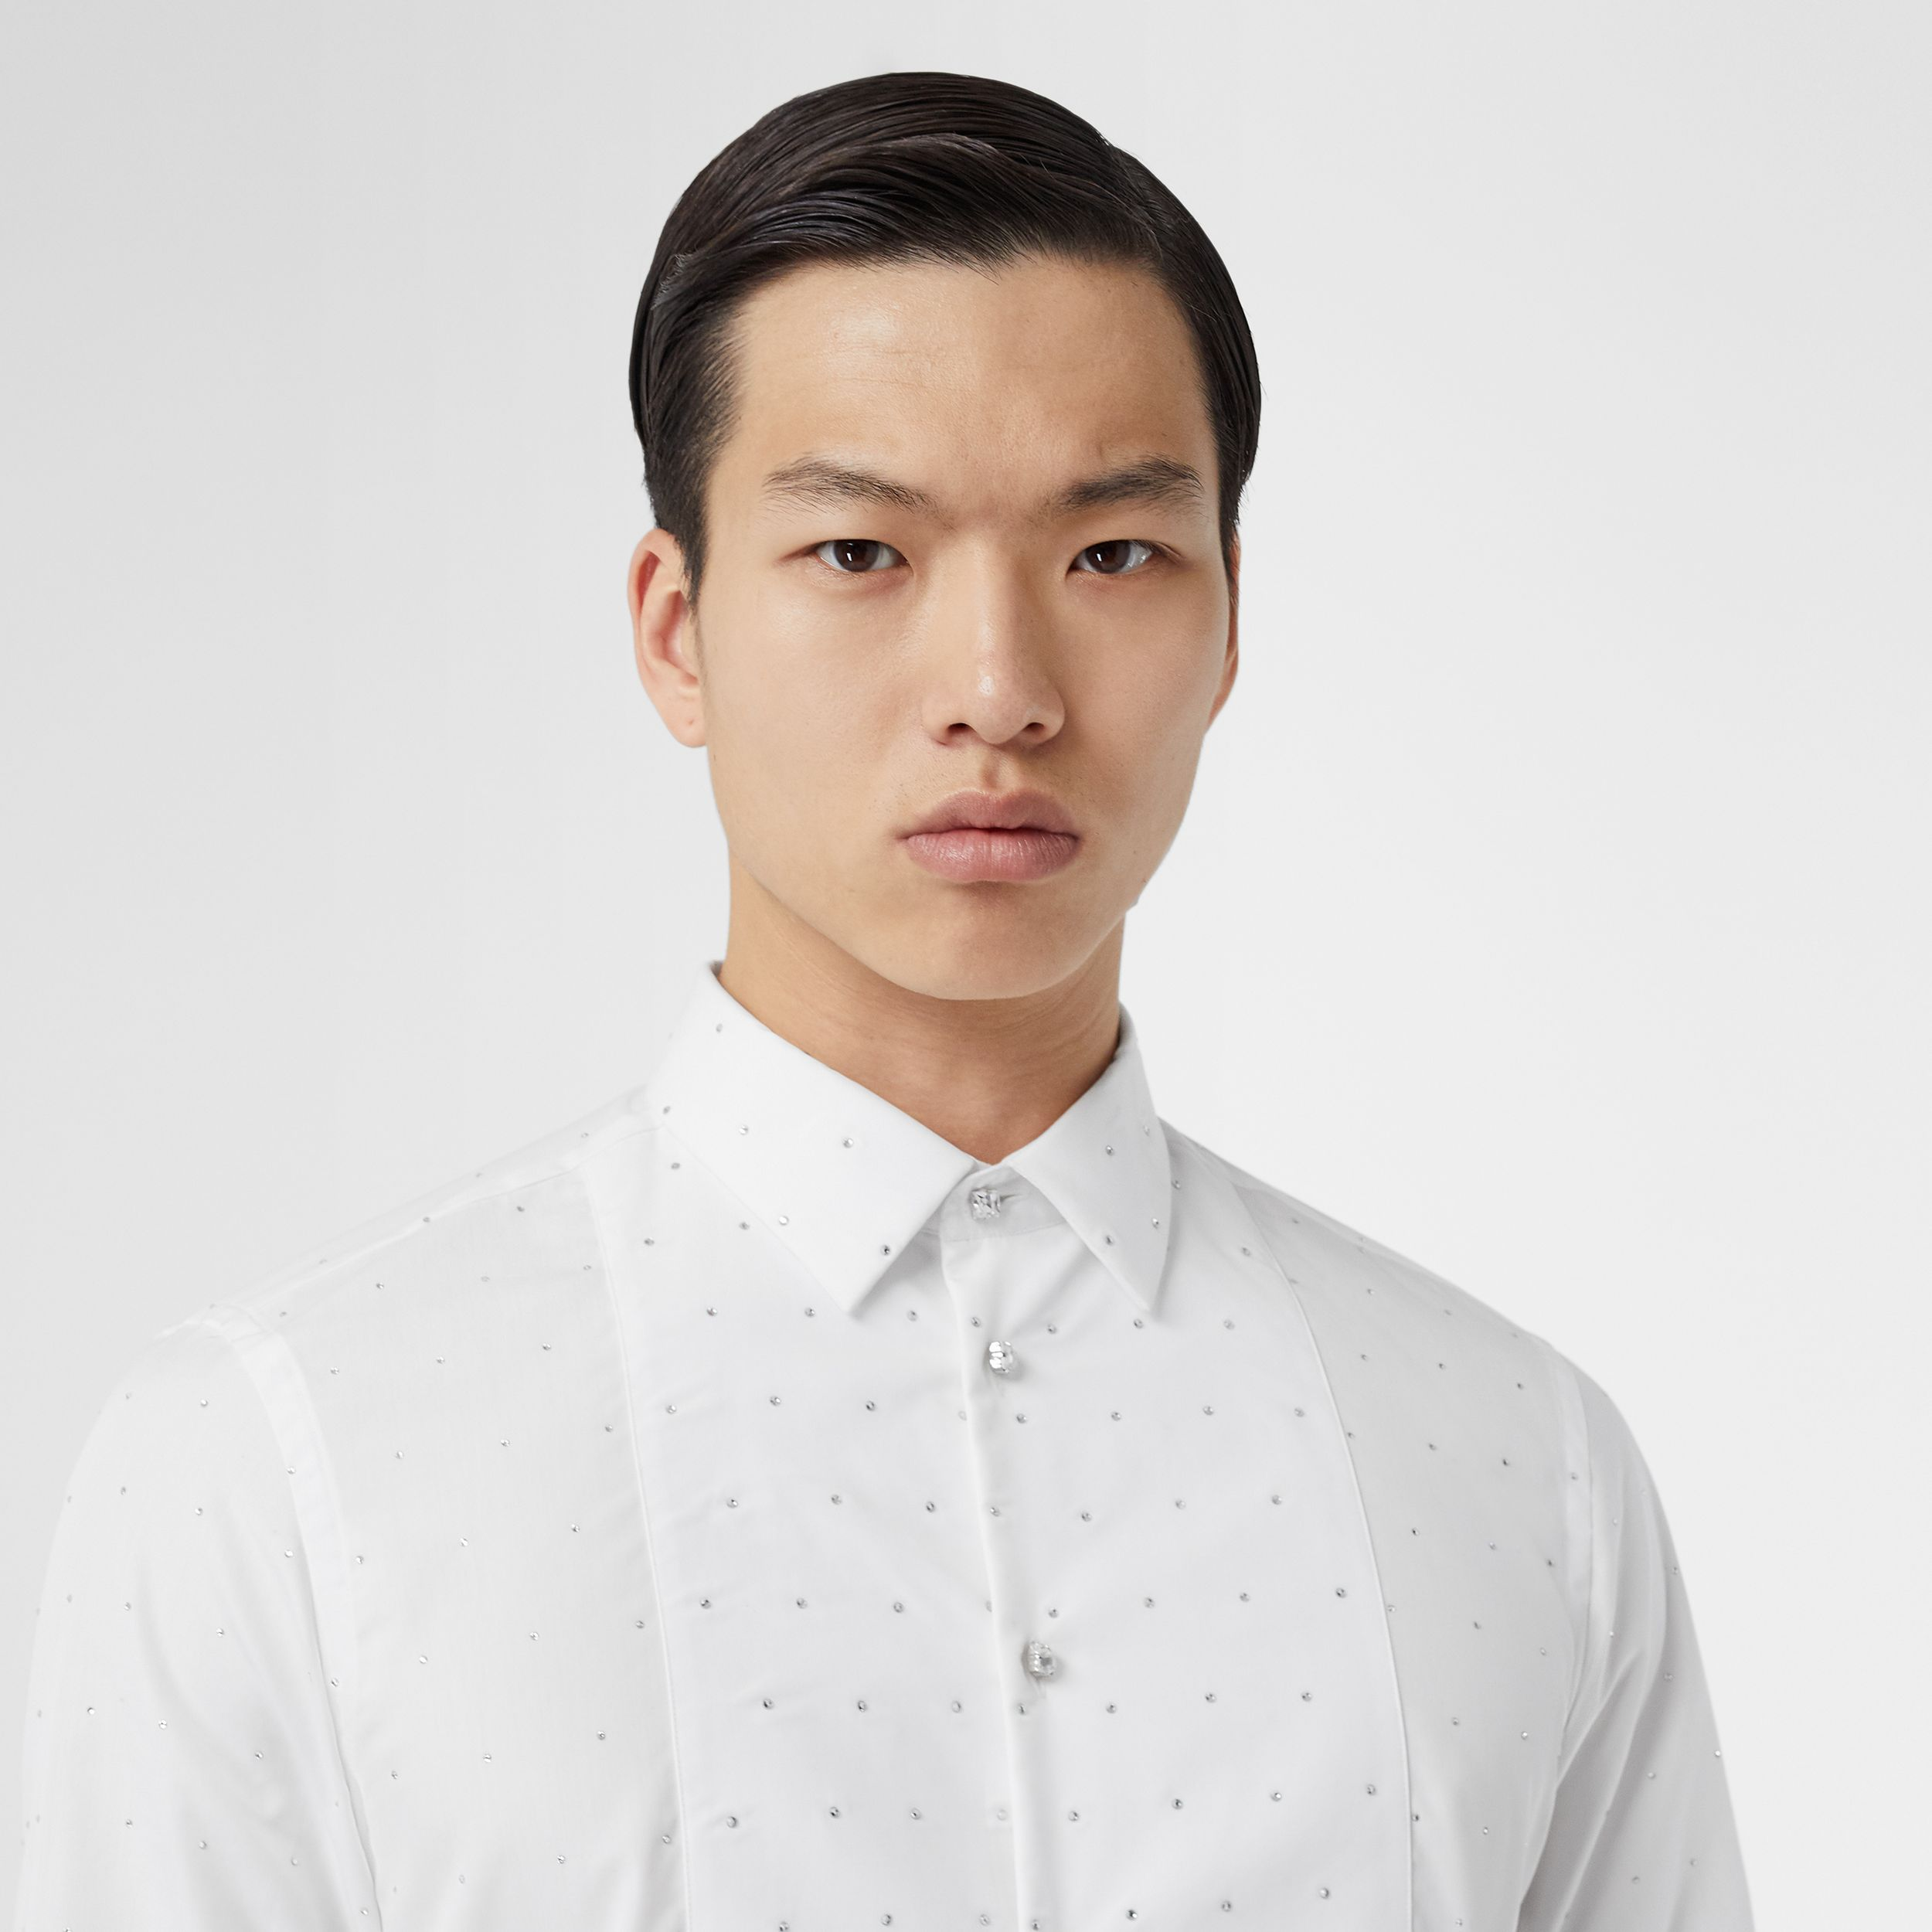 Embellished Cotton Poplin Dress Shirt in Optic White - Men | Burberry - 2